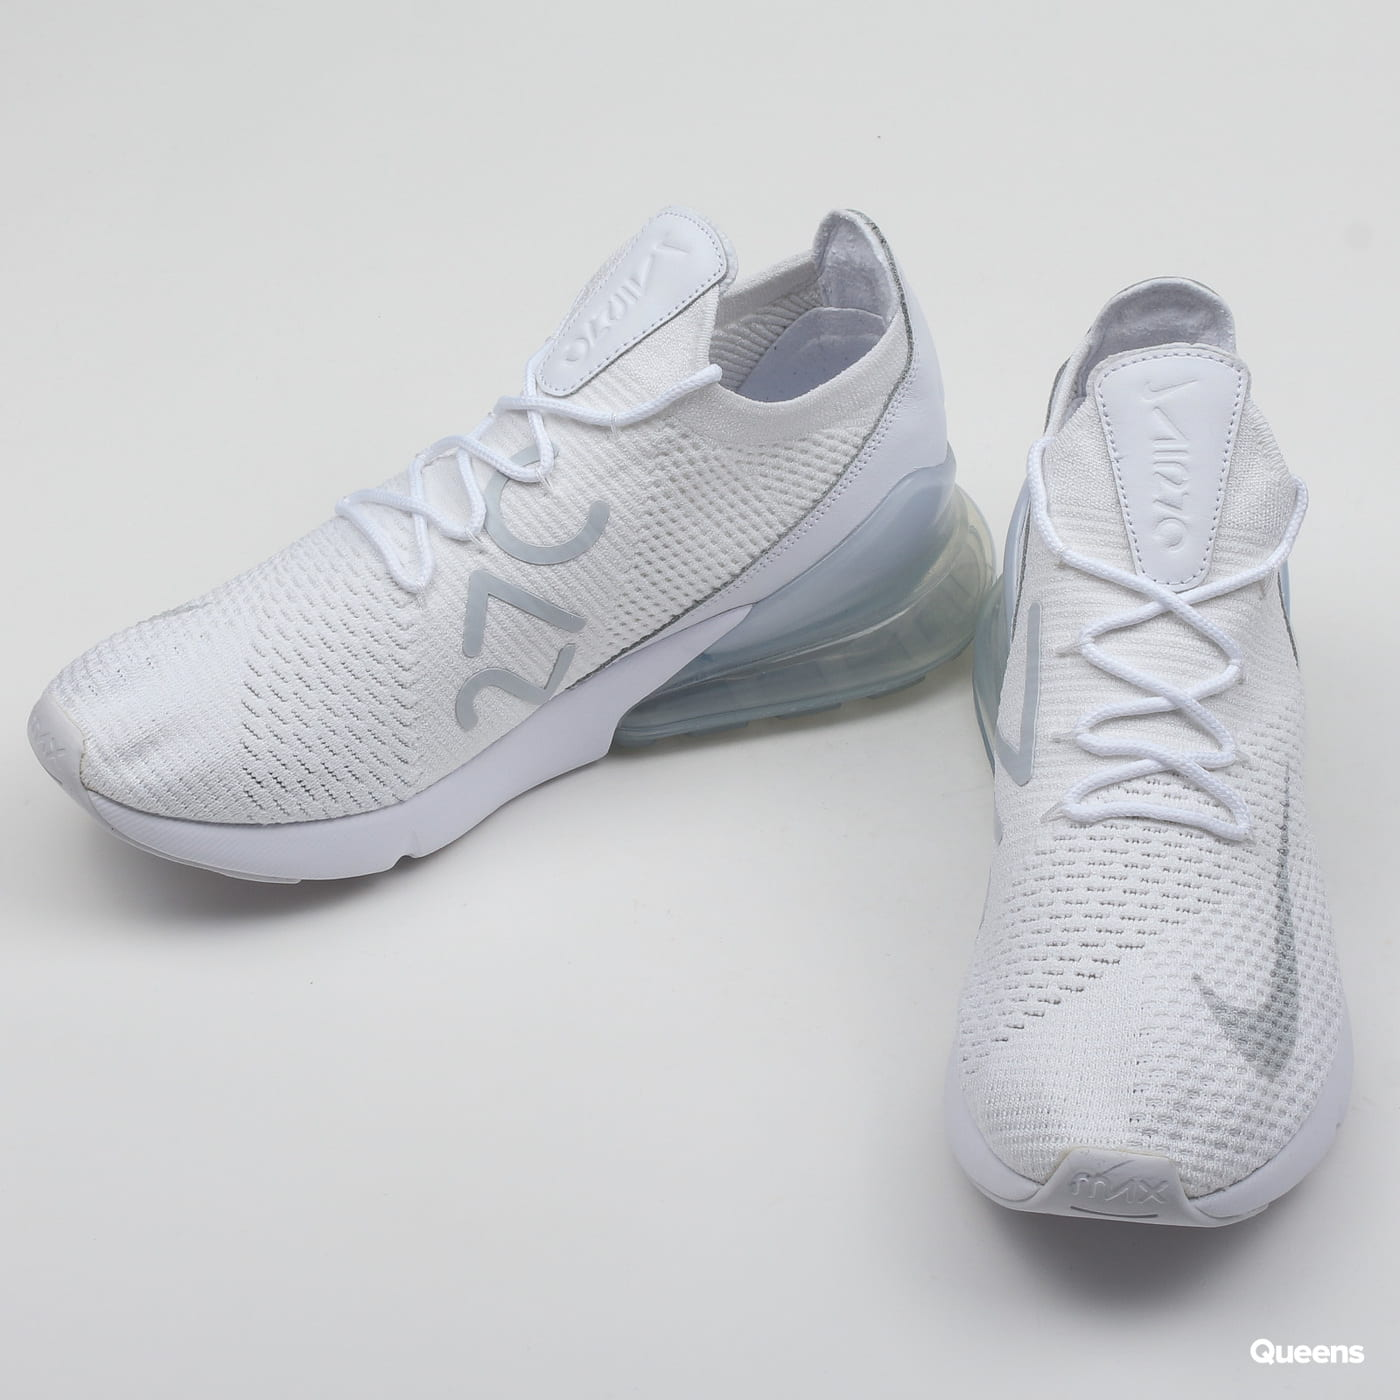 Nike Air Max 270 Flyknit white / pure platinum - white